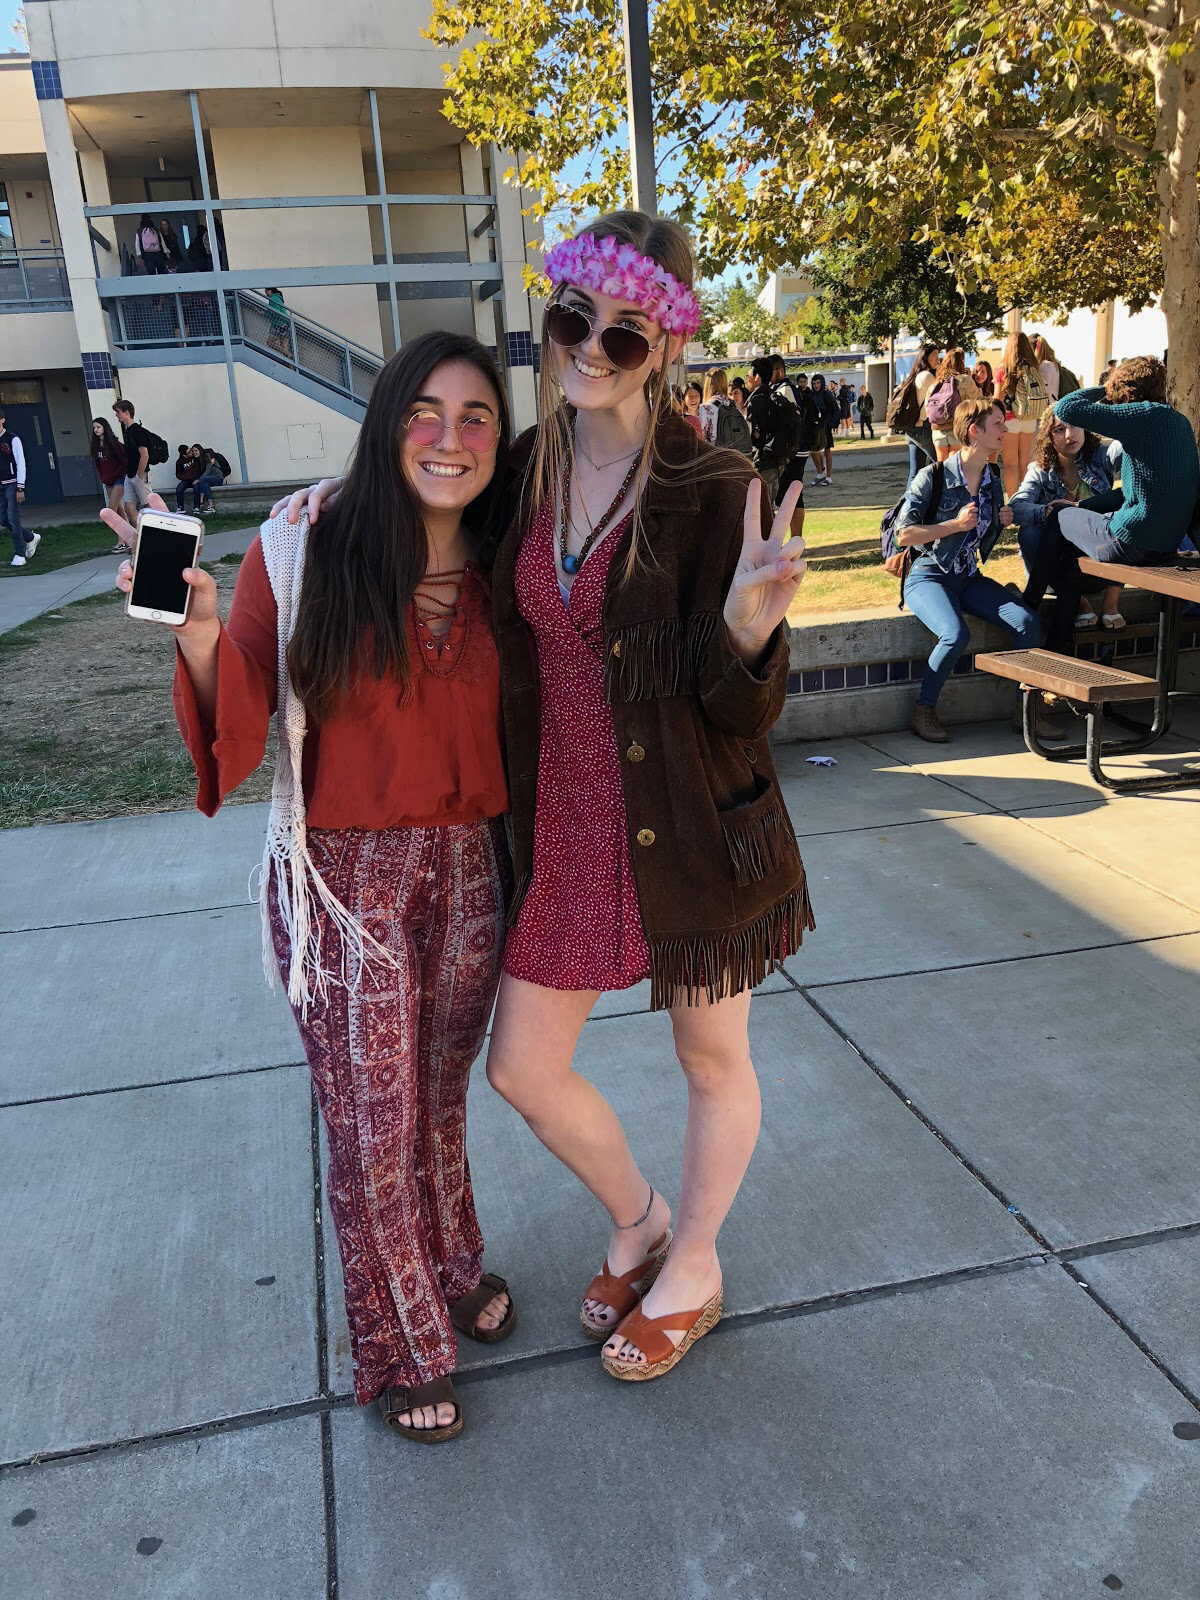 Hippies hit the waves